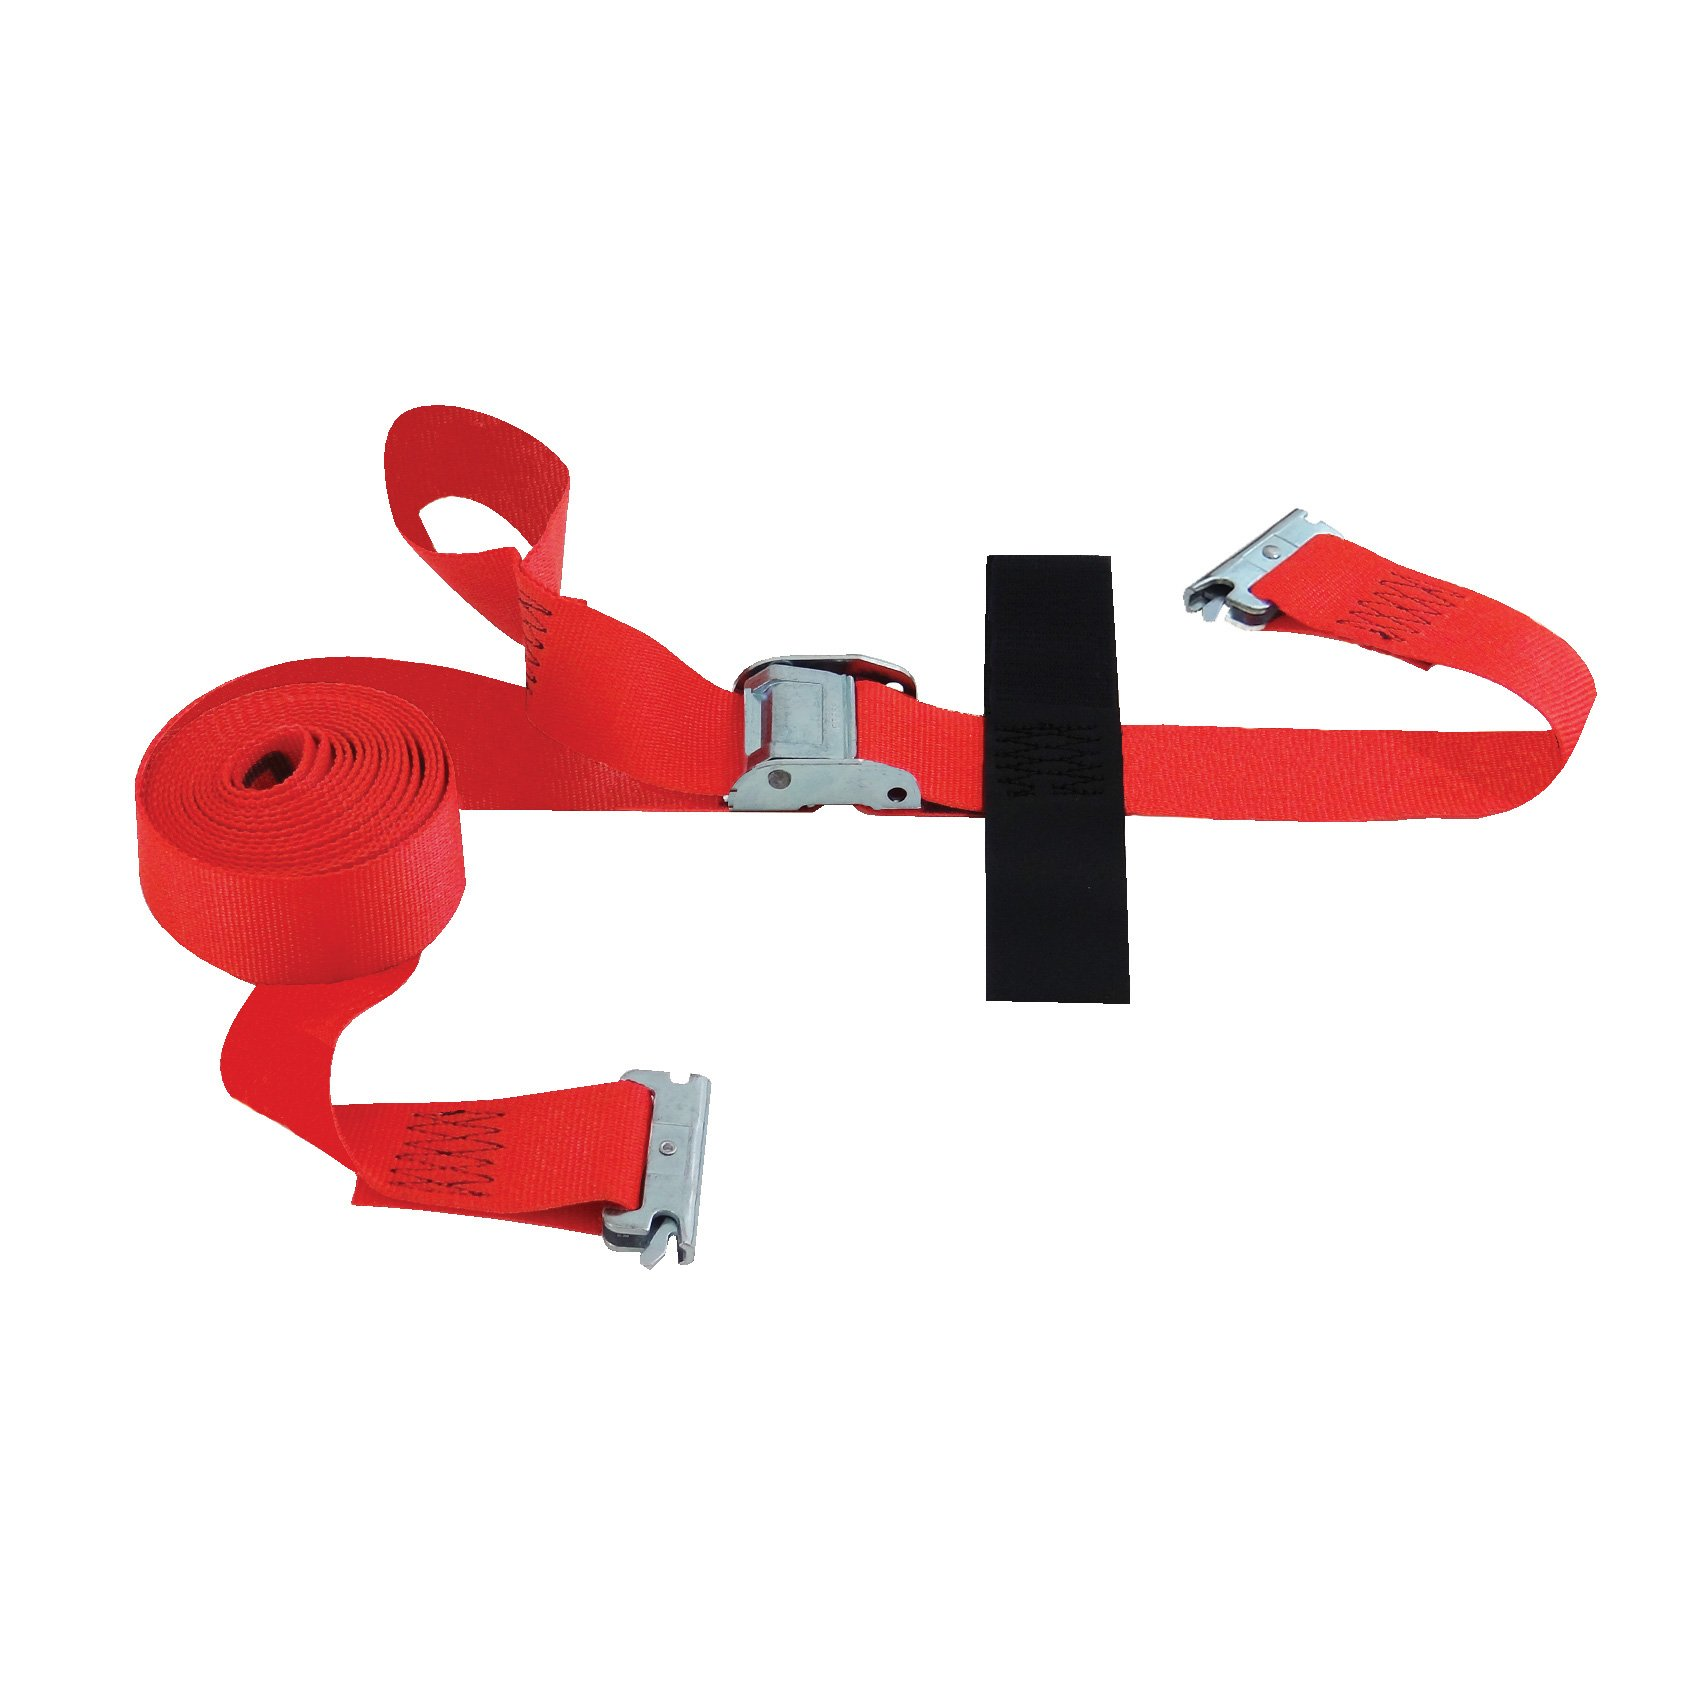 SNAPLOCS E-Strap 2''x16' CAM (USA!) with Hook & Loop Storage Fastener by Snap-Loc